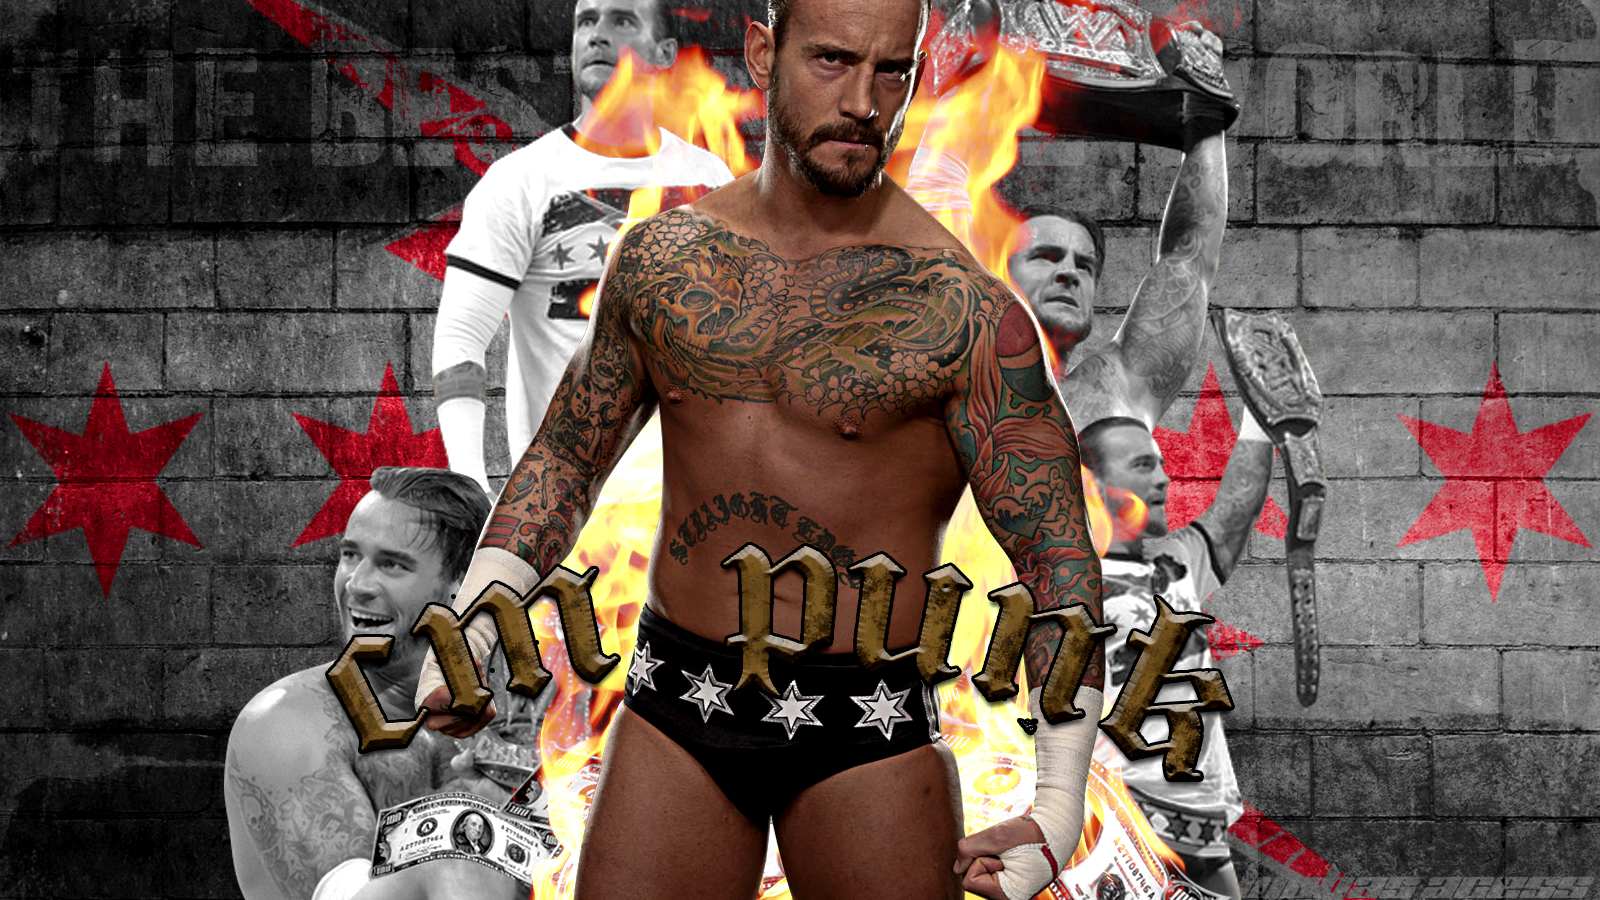 http://2.bp.blogspot.com/-EMbRMN11eRg/TnZgCVtc57I/AAAAAAAAHik/oV81blz4Wgs/s1600/cm_punk_wallpaper_2011_the_best.jpg